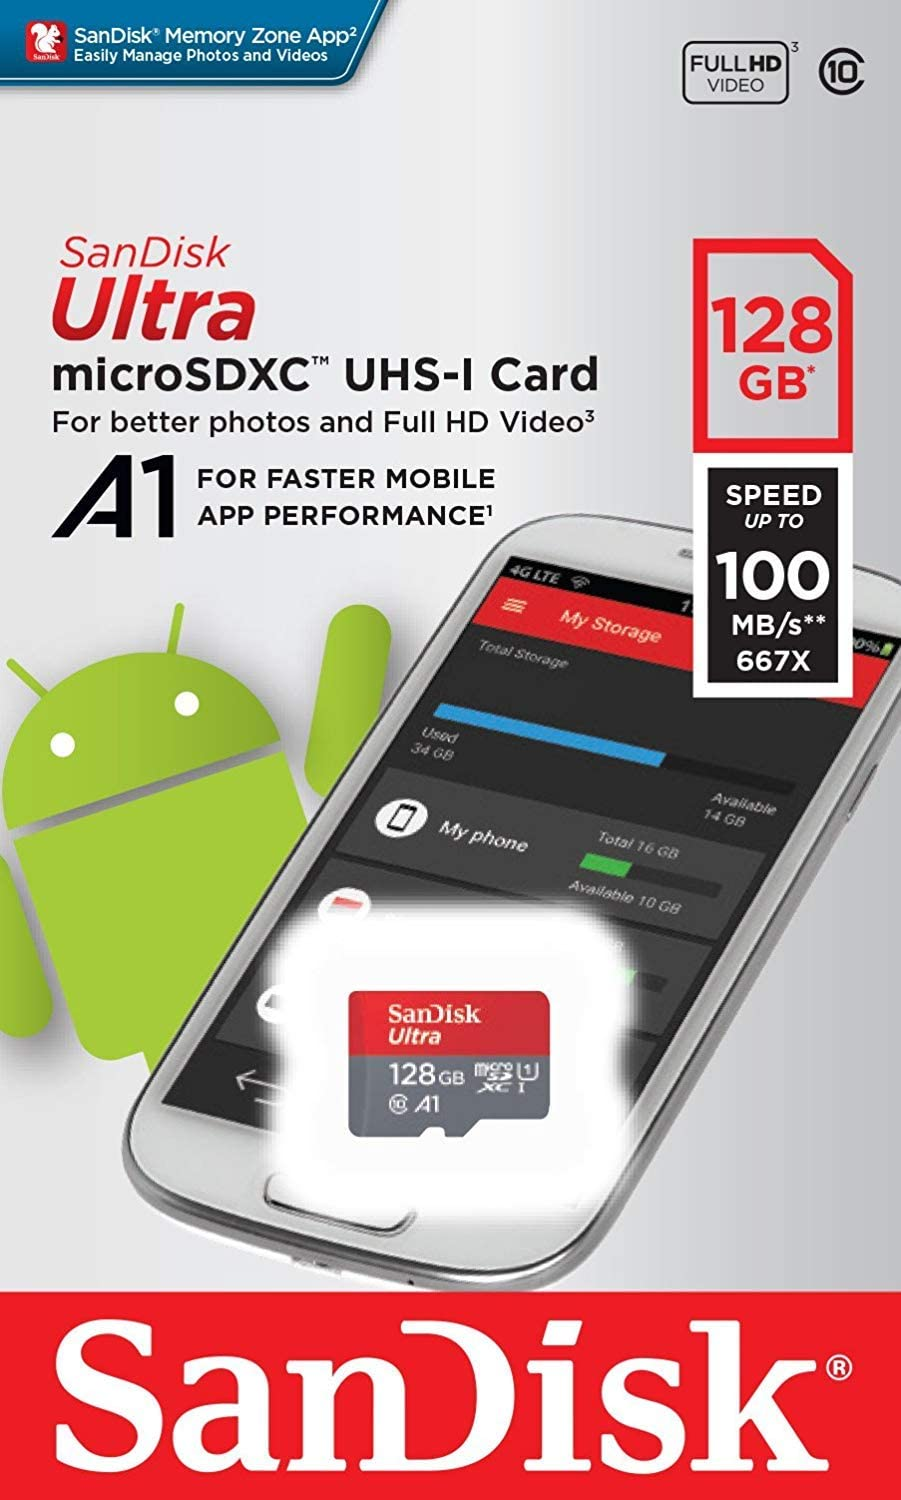 SanDisk Ultra 128GB MicroSDXC Verified for Samsung I9500 by SanFlash 100MBs A1 U1 C10 Works with SanDisk